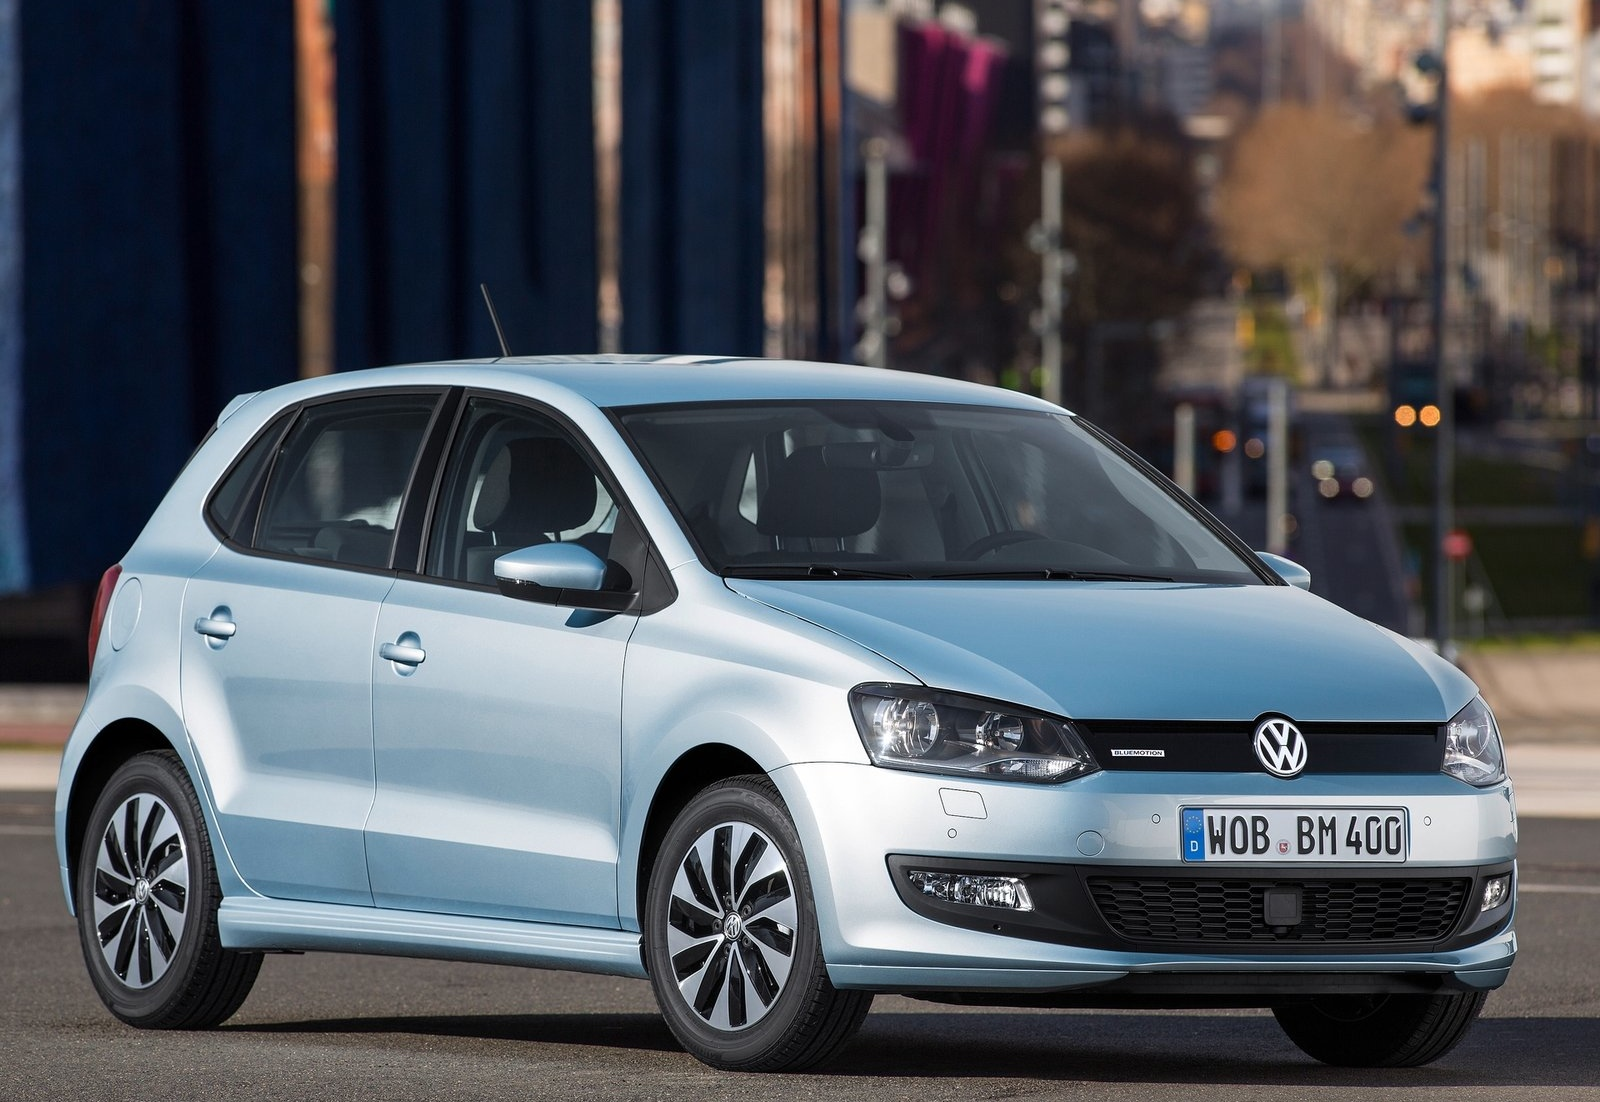 vw launches 2015 polo tsi bluemotion with 1 liter turbo engine autoevolution. Black Bedroom Furniture Sets. Home Design Ideas